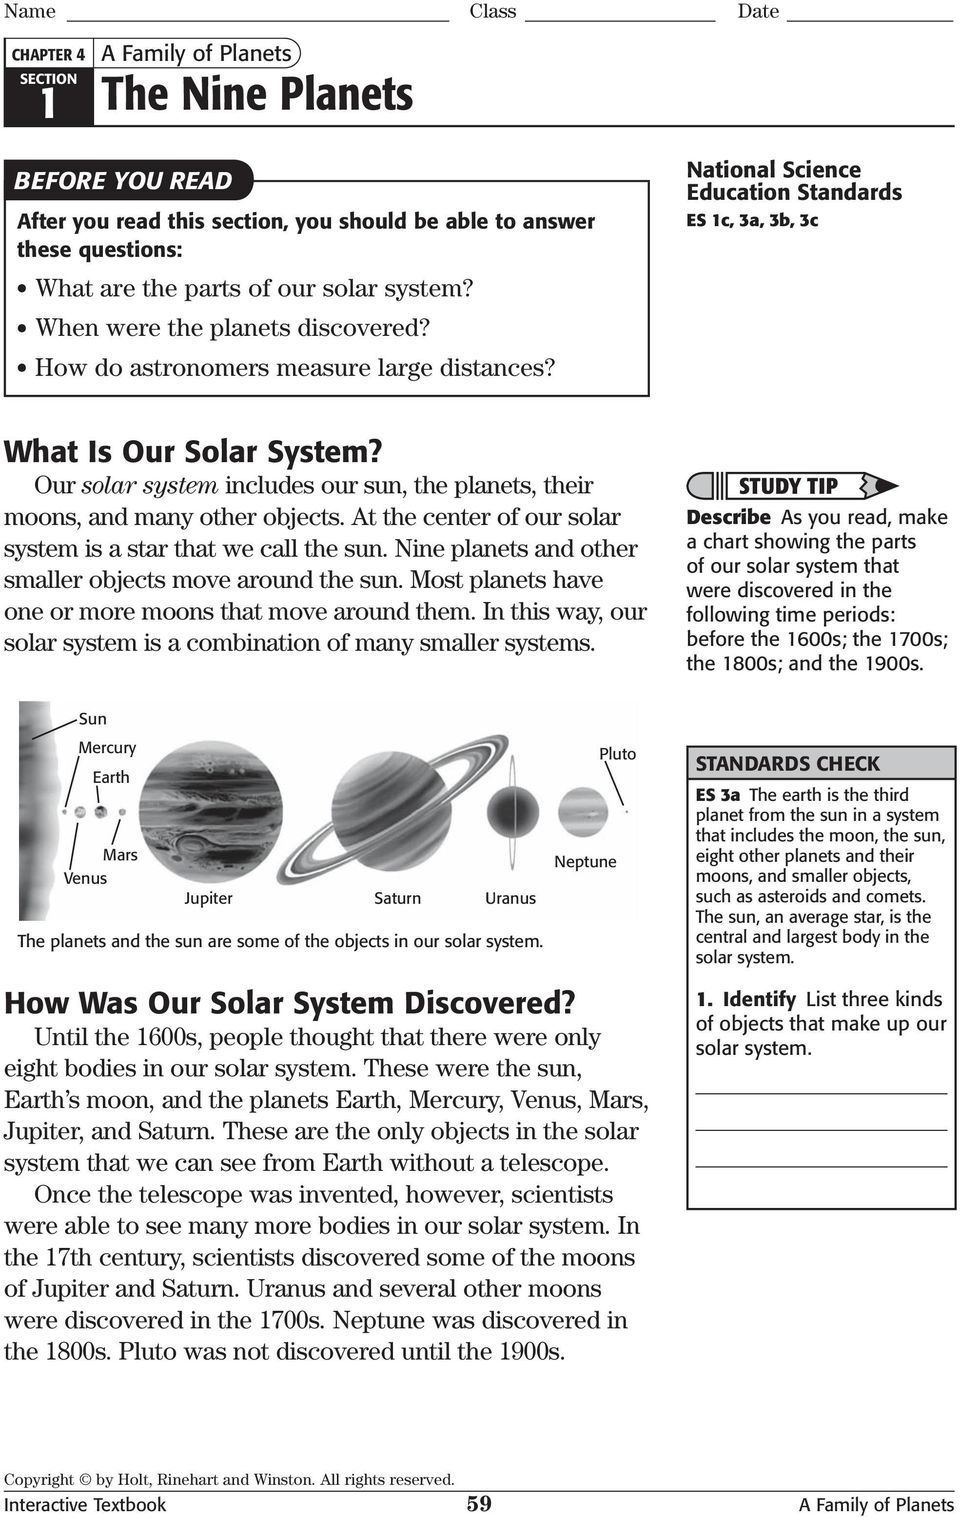 Our solar system includes our sun, the planets, their moons, and many other objects. At the center of our solar system is a star that we call the sun.